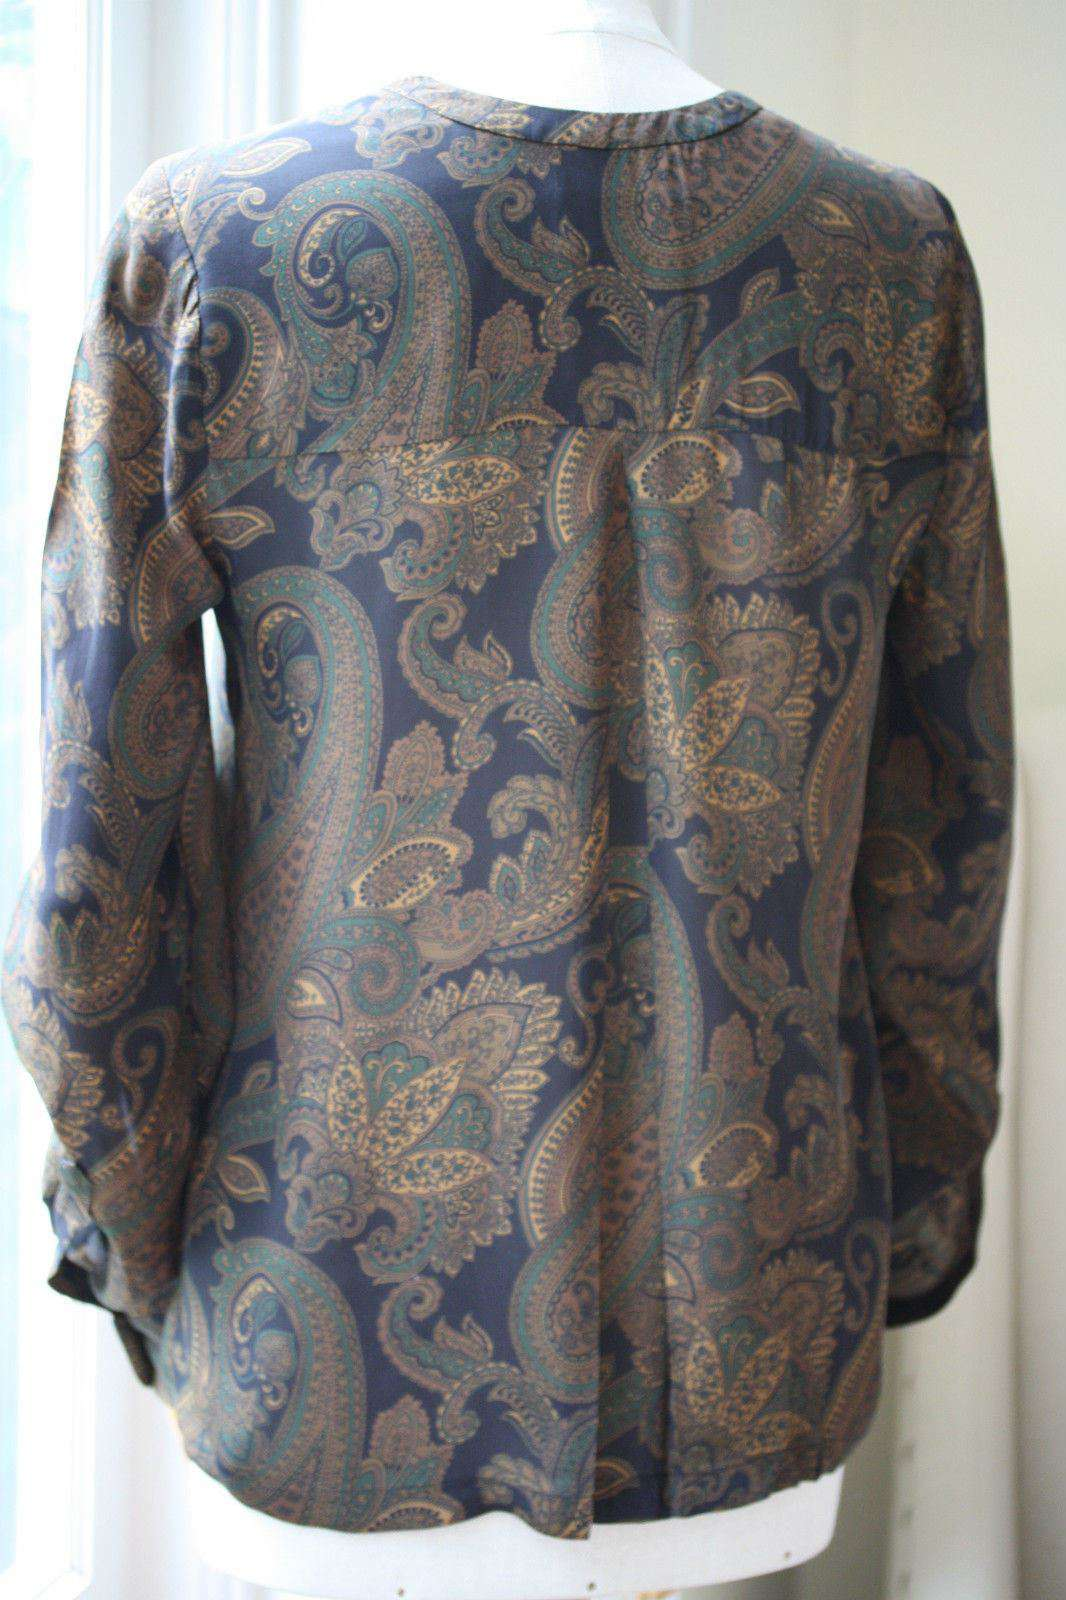 A.L.C. ARI PAISLEY BLOUSE TOP SMALL